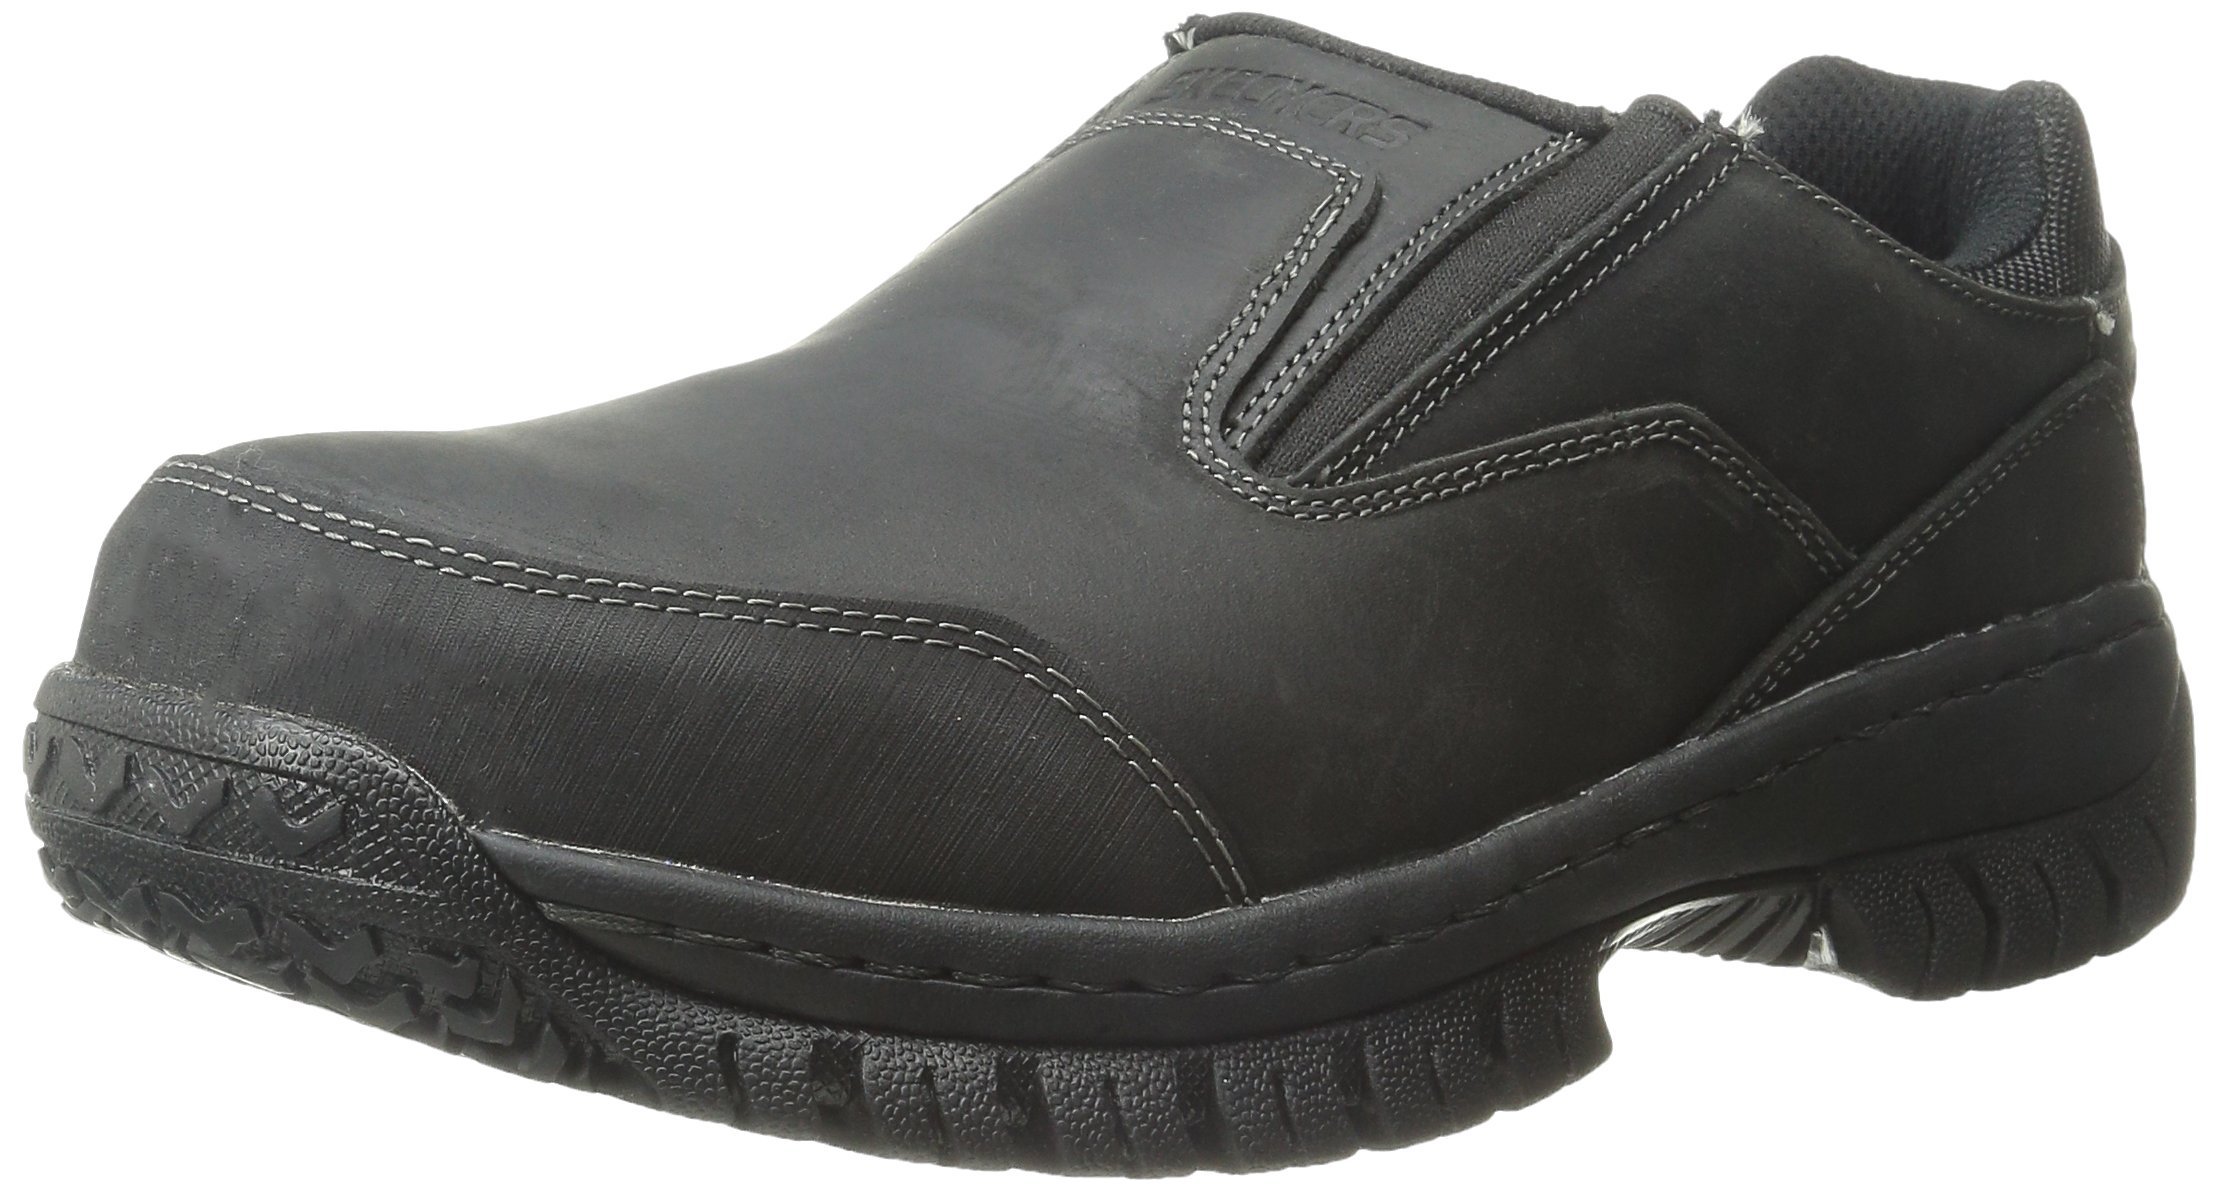 Skechers for Work Men's Hartan Slip-On Shoe, Black, 9 M US by Skechers